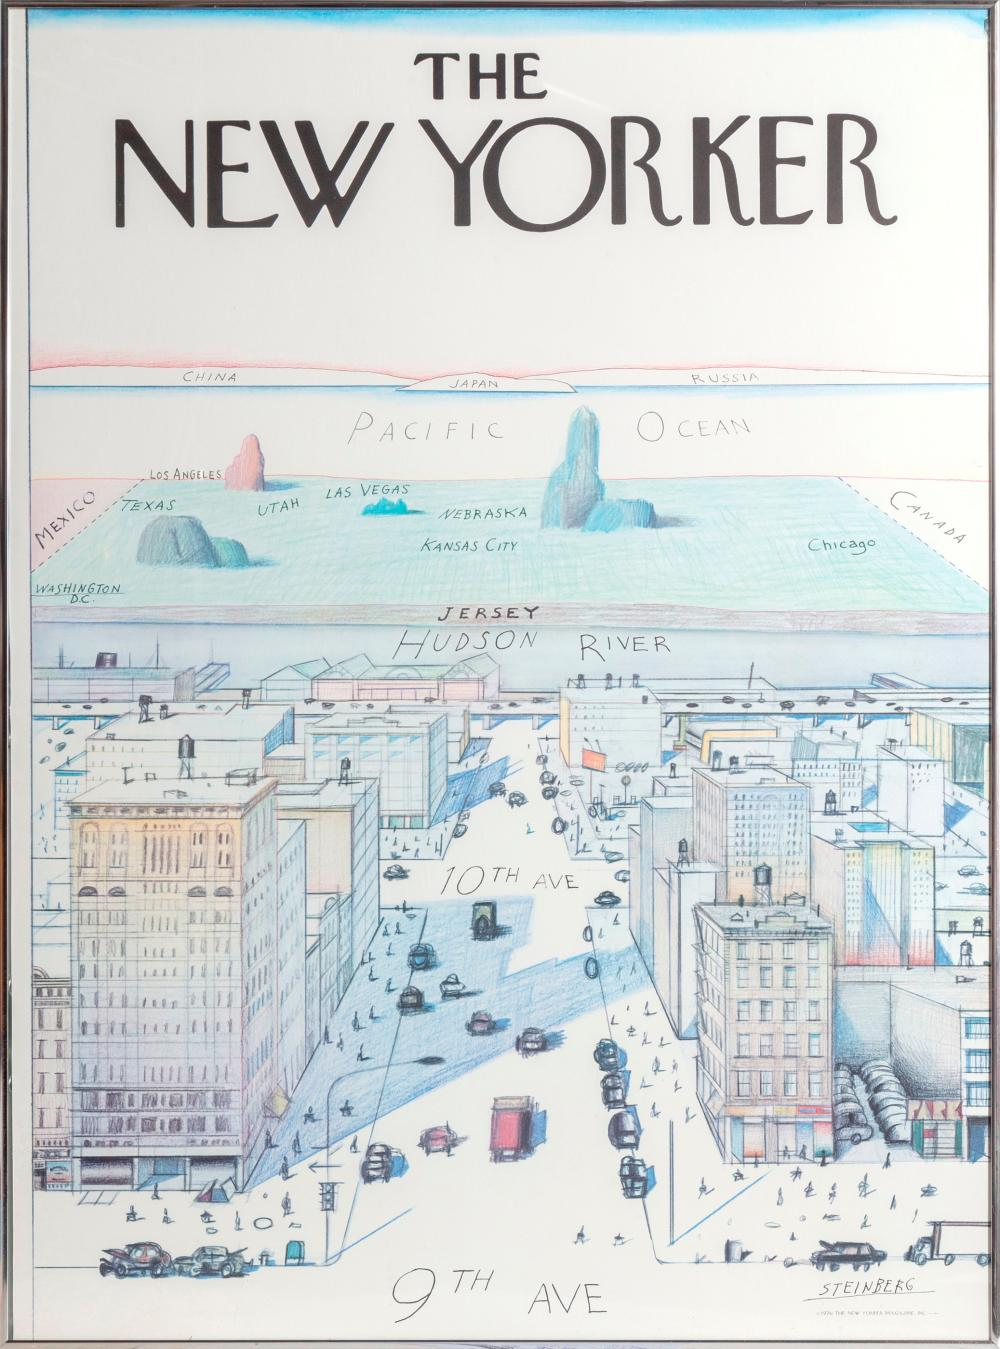 SAUL STEINBERG, VIEW OF THE WORLD FROM 9TH AVENUE - THE NEW YORKER, POSTER, MOUNTED ON BOARD